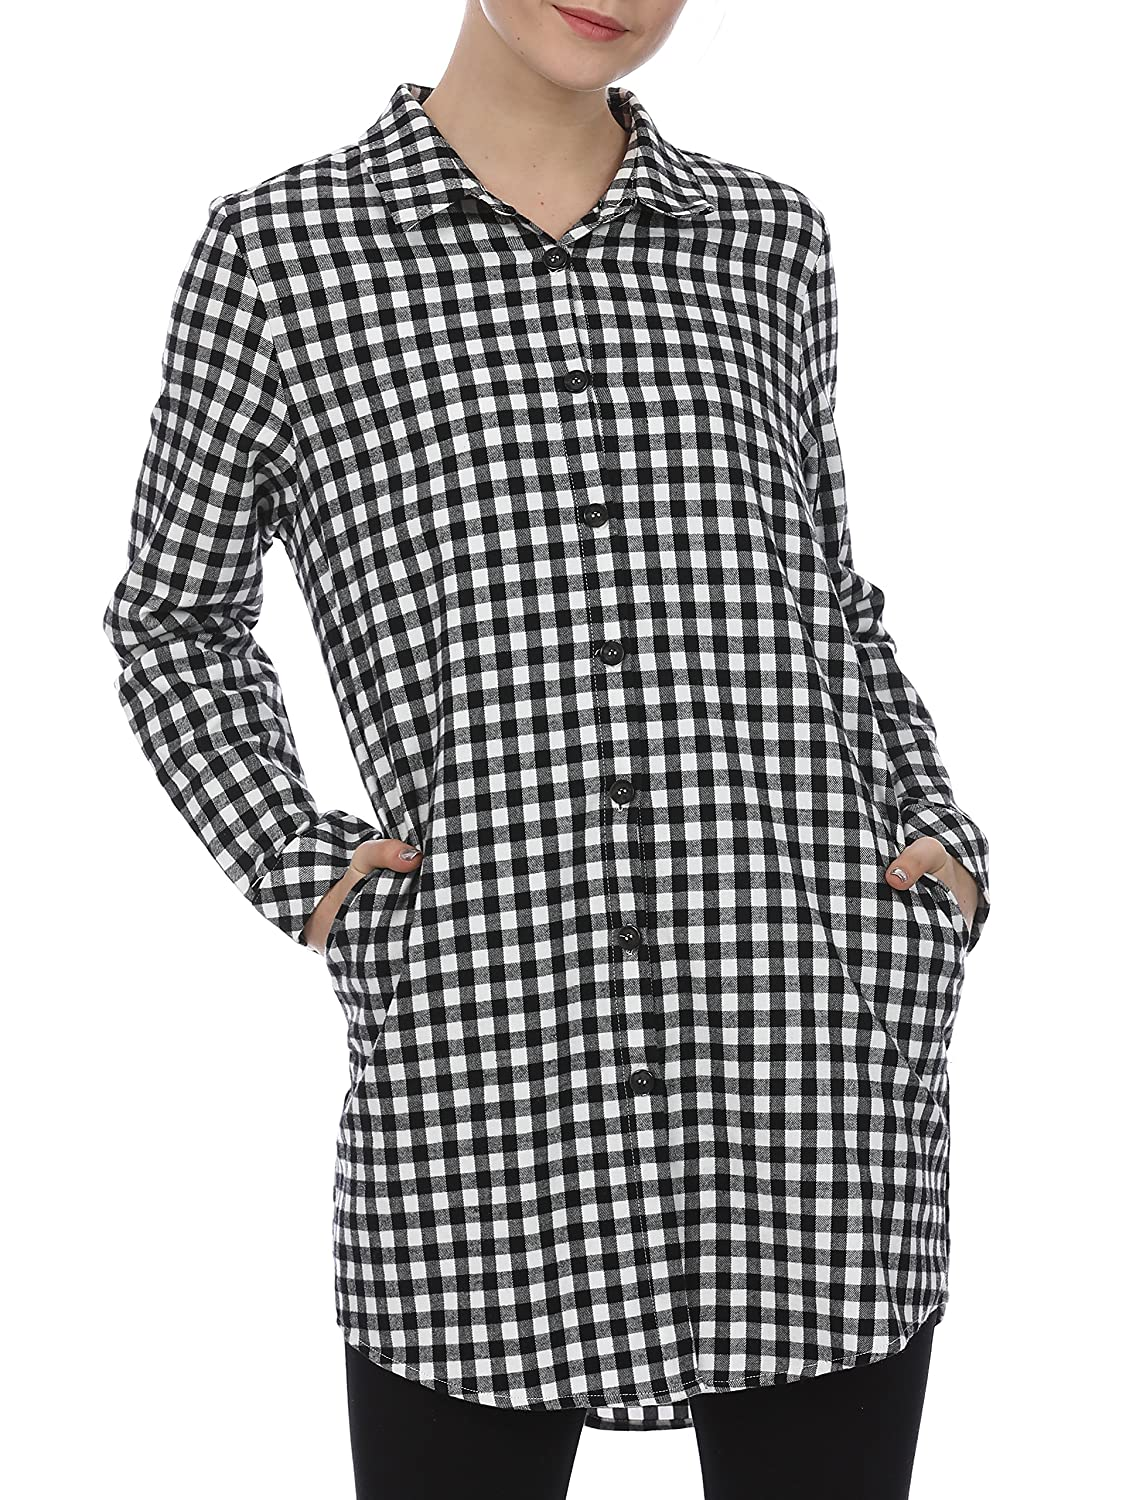 Furami Womens Plaid Button Casual Flannel Shirt Dress Long Sleeve